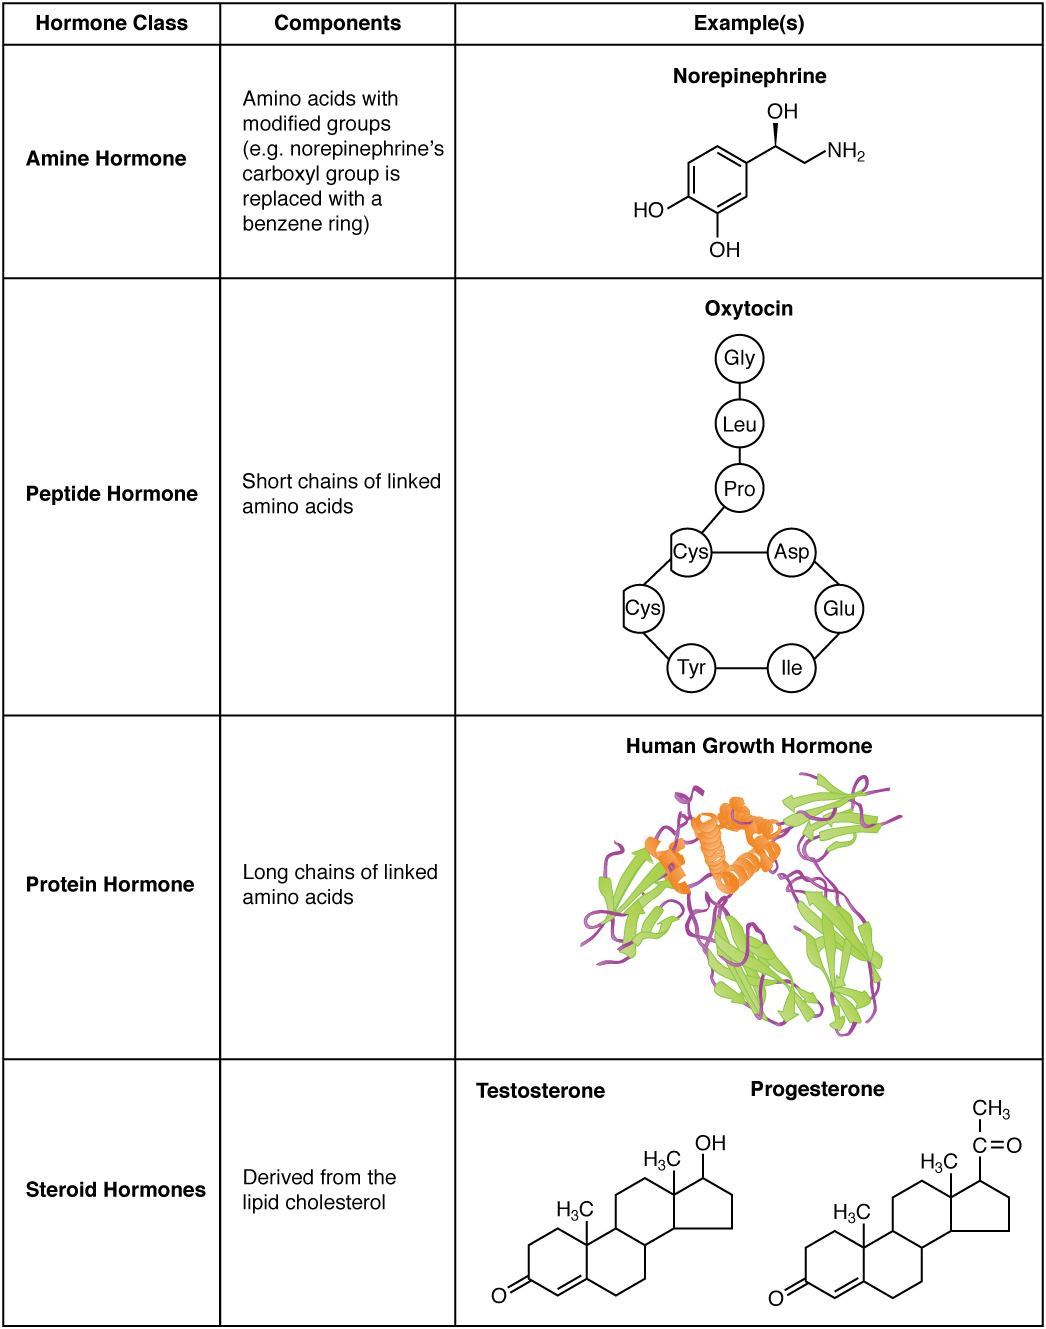 This table shows the chemical structure of amine hormones, peptide hormones, protein hormones, and steroid hormones. Amine hormones are amino acids with modified side groups. The example given is norepinephrine, which contains the NH two group typical of an amino acid, along with a hydroxyl (OH) group. The carboxyl group typical of most amino acids is replaced with a benzene ring, depicted as a hexagon of carbons that are connected by alternating single and double bonds. Peptide hormones are composed of short chains of amino acids. The example given is oxytocin, which has a chain of the following amino acids: GLY, LEU, PRO. The PRO is the bottom of the chain, which connects to a ring of the following amino acids: CYS, CYS, TYR, ILE, GLU, and ASP. Protein hormones are composed of long chains of linked amino acids. The example given is human growth hormone, which is composed of a bundle of amino acid strands, some thread-like, some coiled, and some in flat, folded sheets. Finally, steroid hormones are derived from the lipid cholesterol. Testosterone and progesterone are given as examples, which each contain several hexagonal and pentagonal carbon rings linked together.